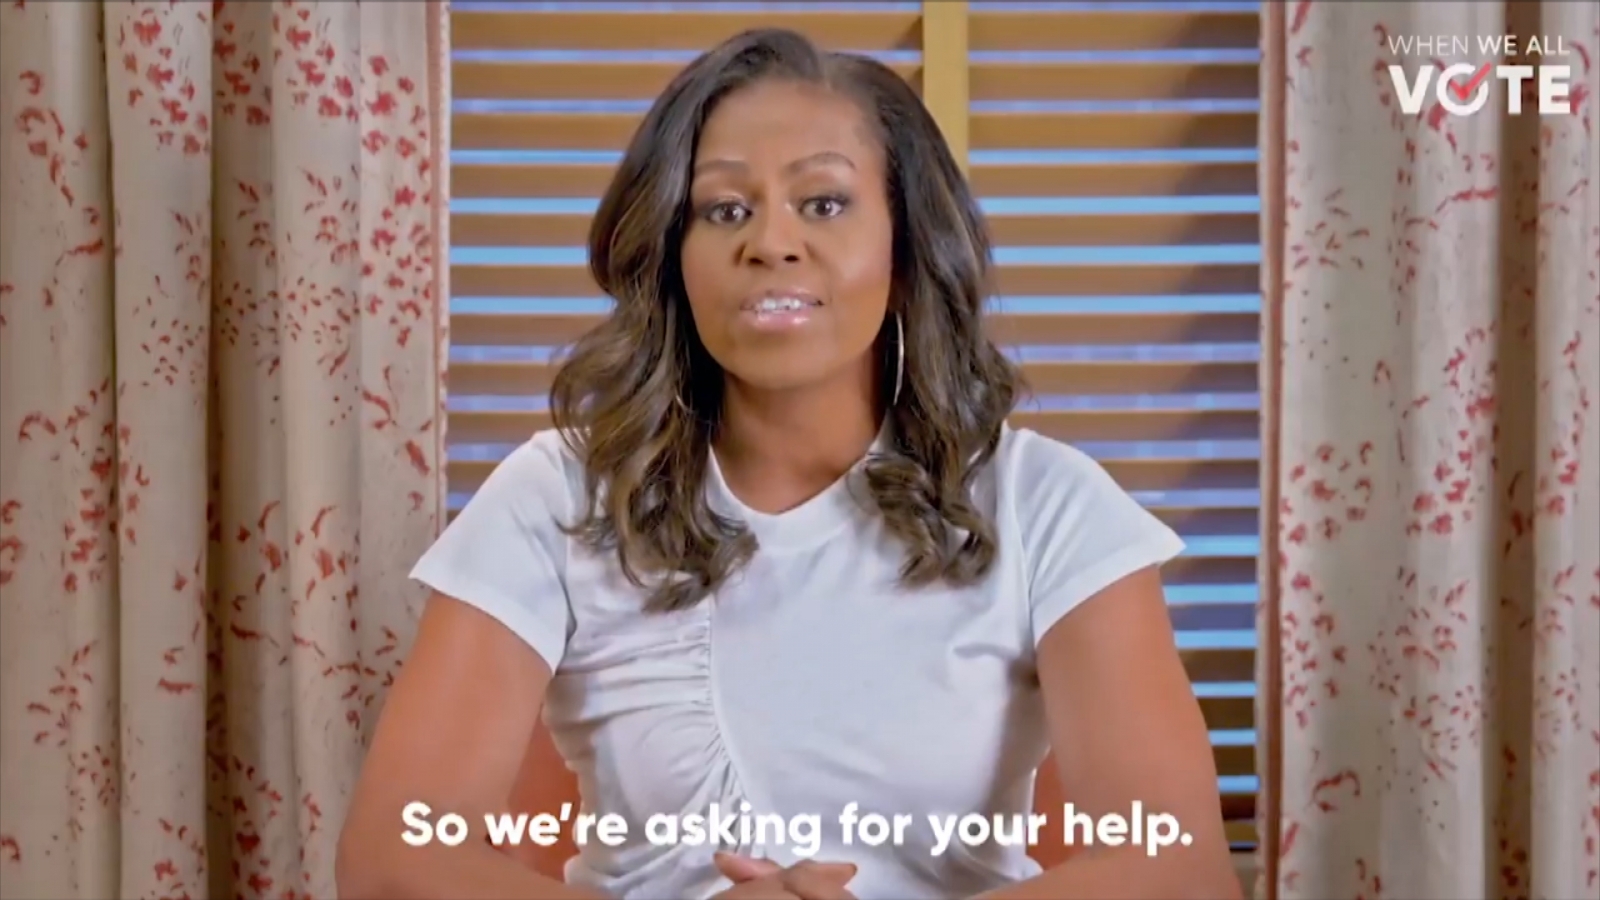 when-we-all-vote-michelle-obama-announces-midterm-elections-role